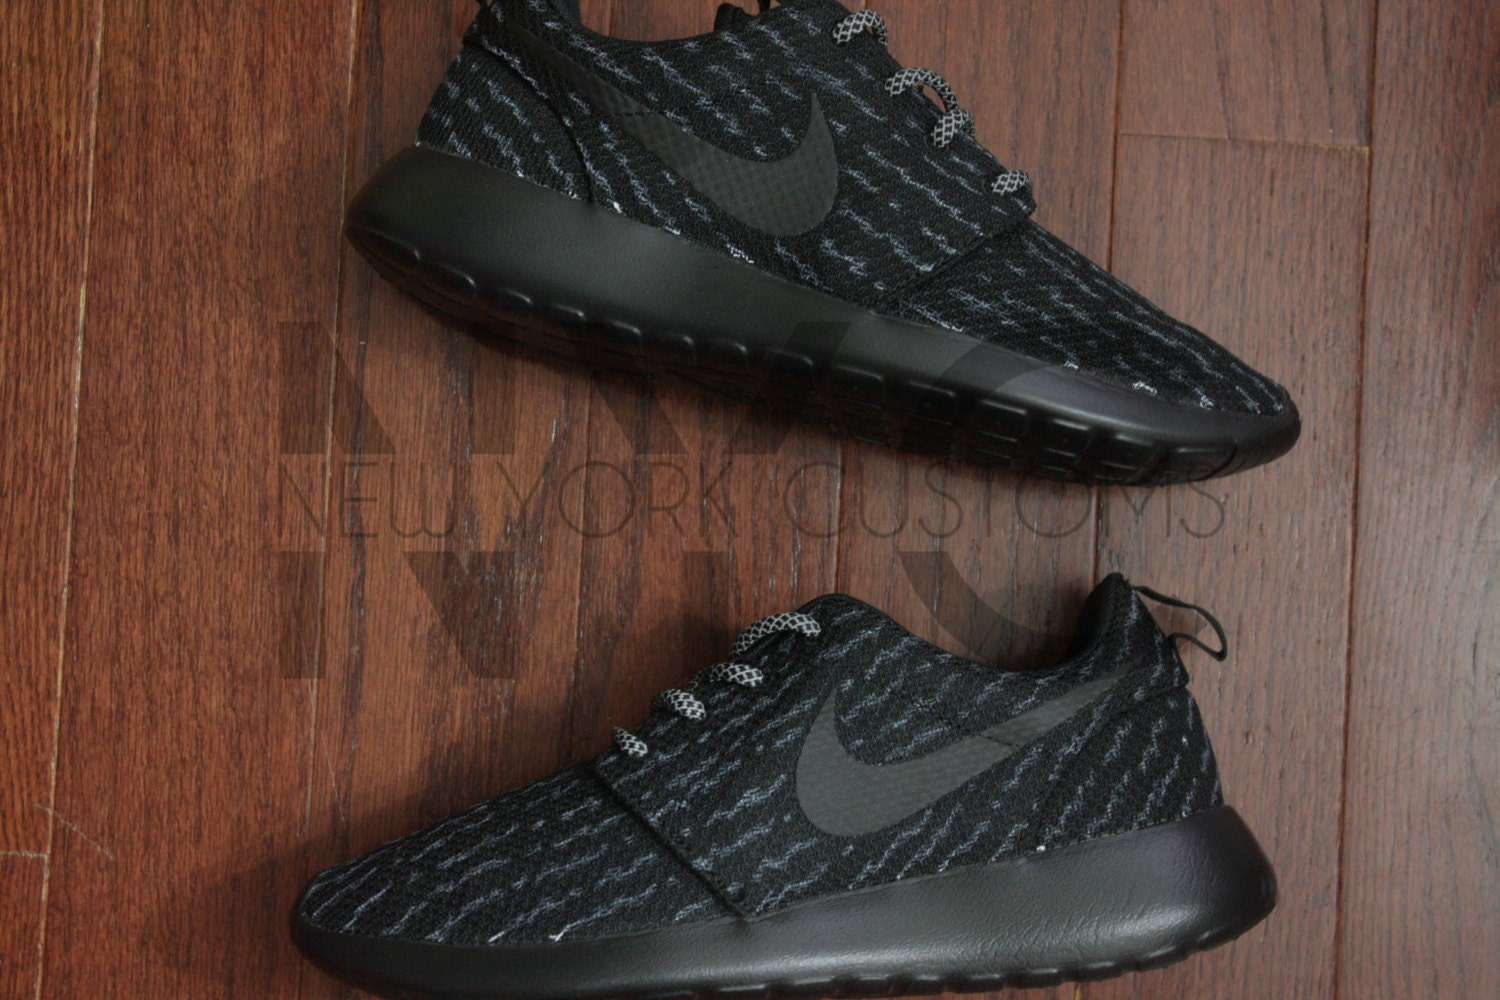 Details about Nike Roshe Run Running Training Shoe Black Gold Grey Women's US 10 511882 070